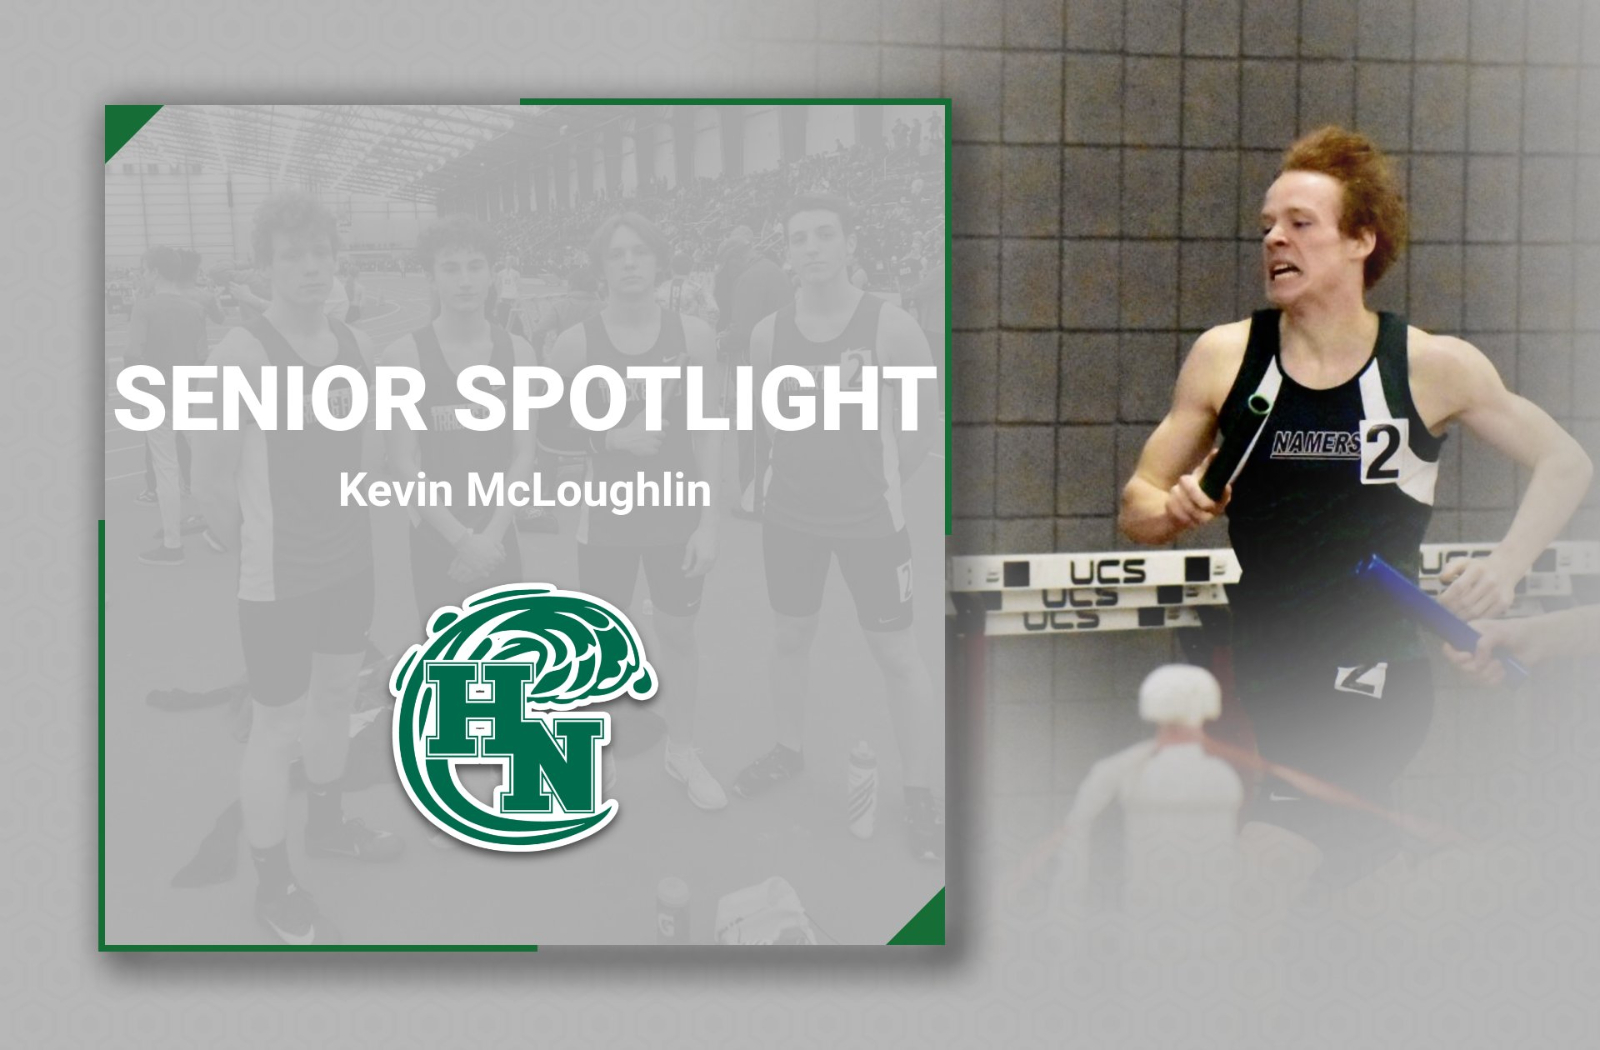 Senior Spotlight – Kevin McLoughlin